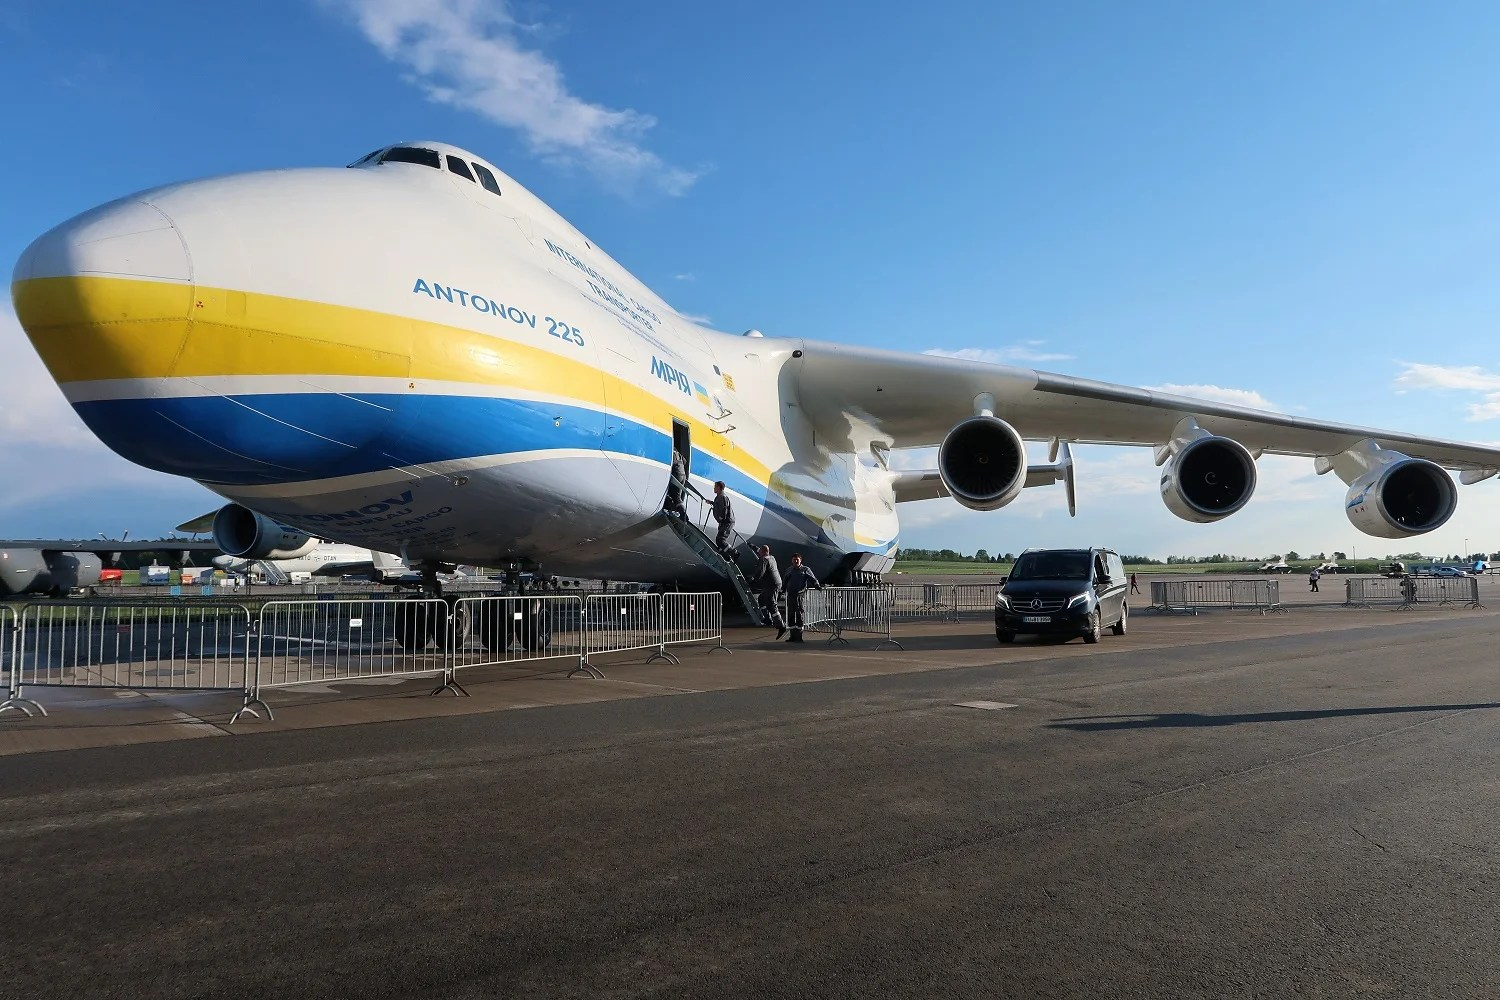 A Tour Inside the Largest Operating Aircraft in the World — the Antonov An-225